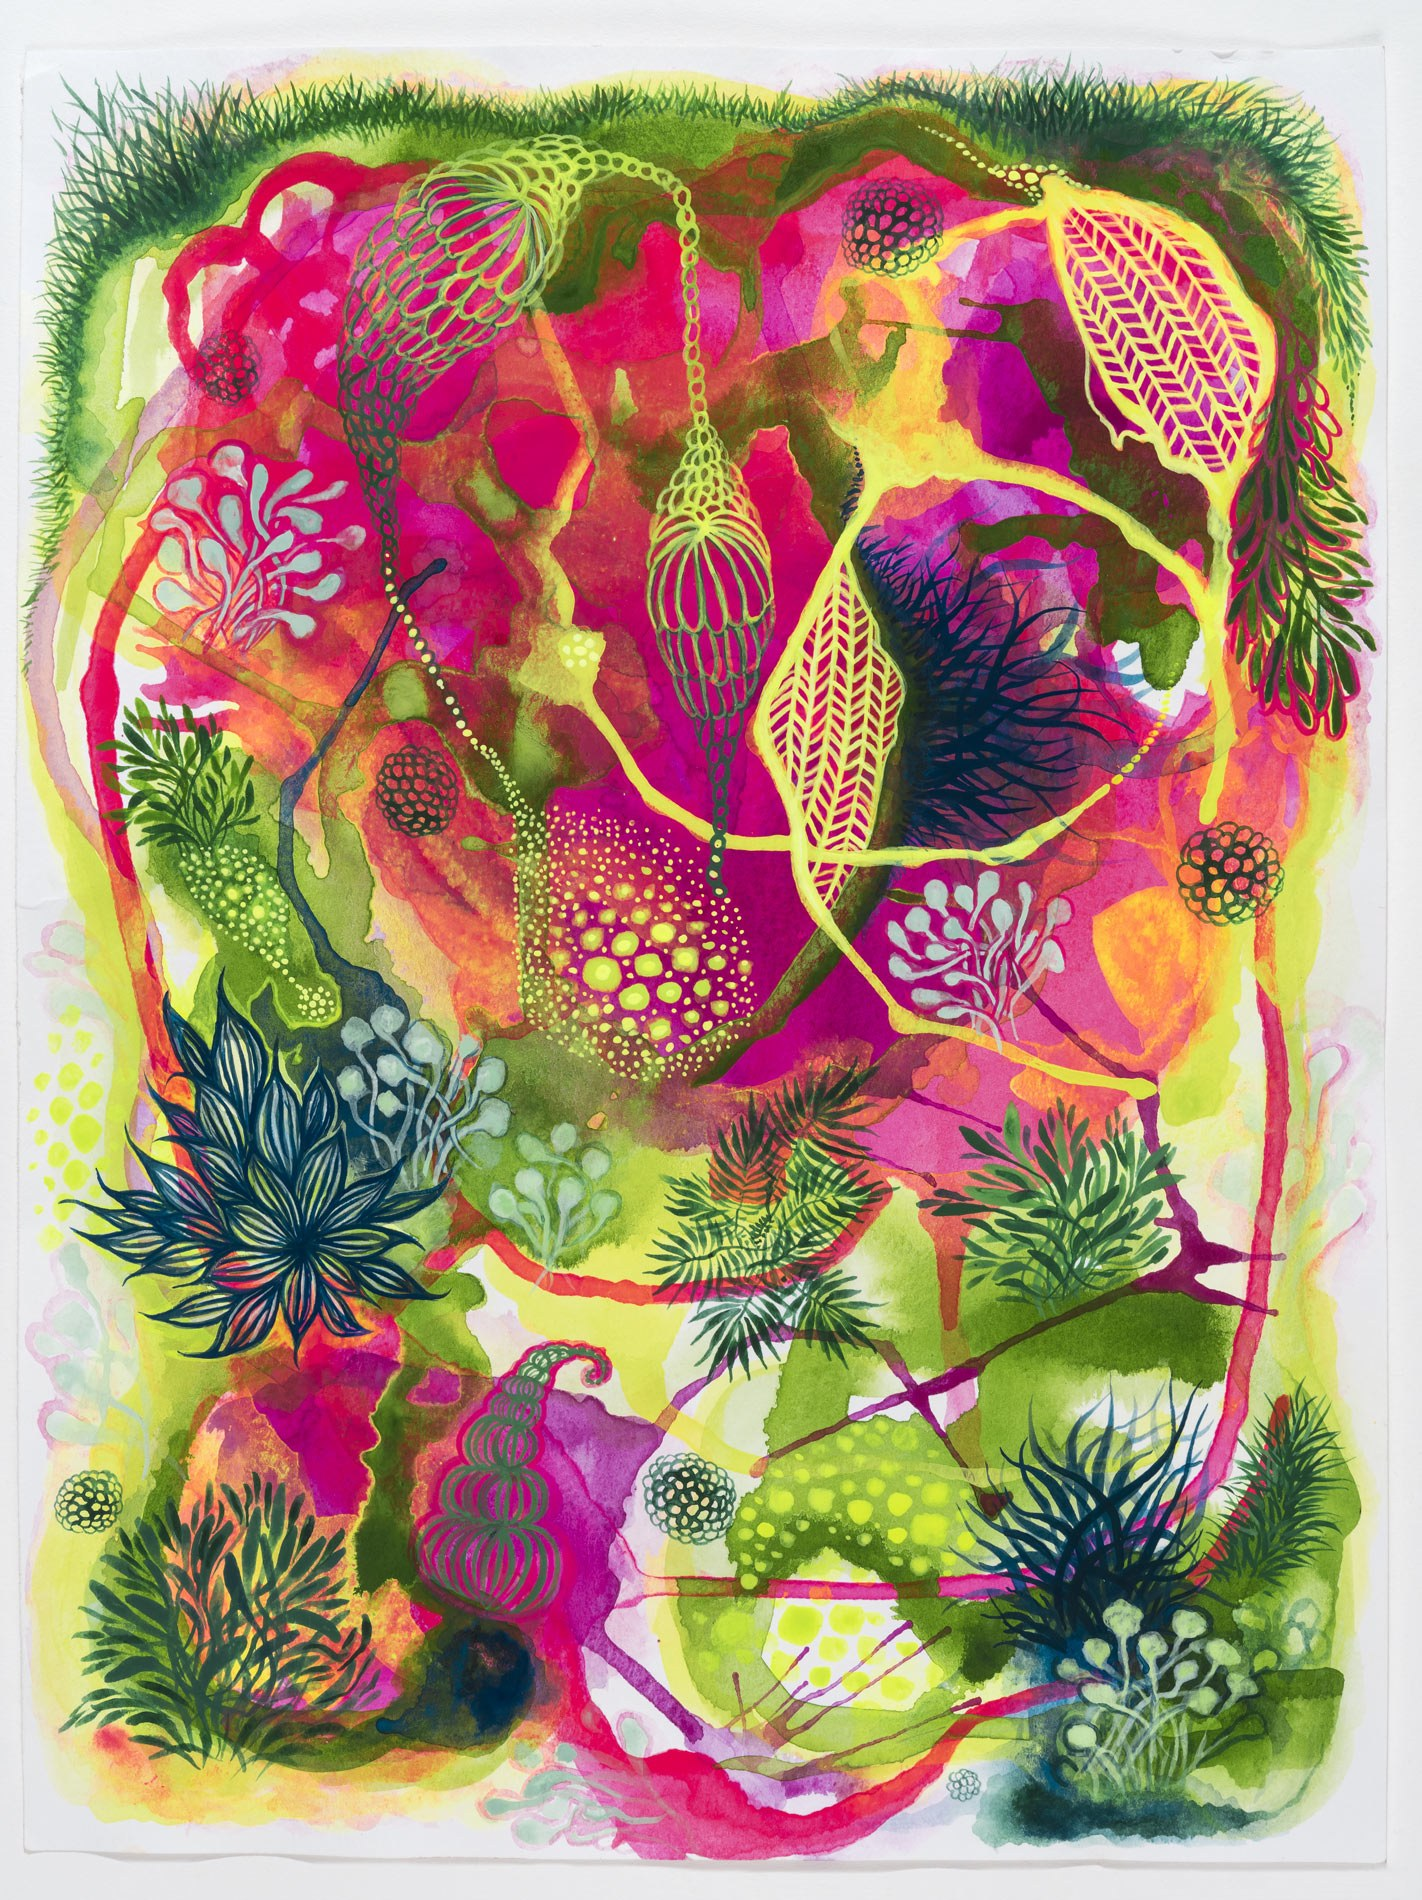 Abstracted Garden in Pink and Green I